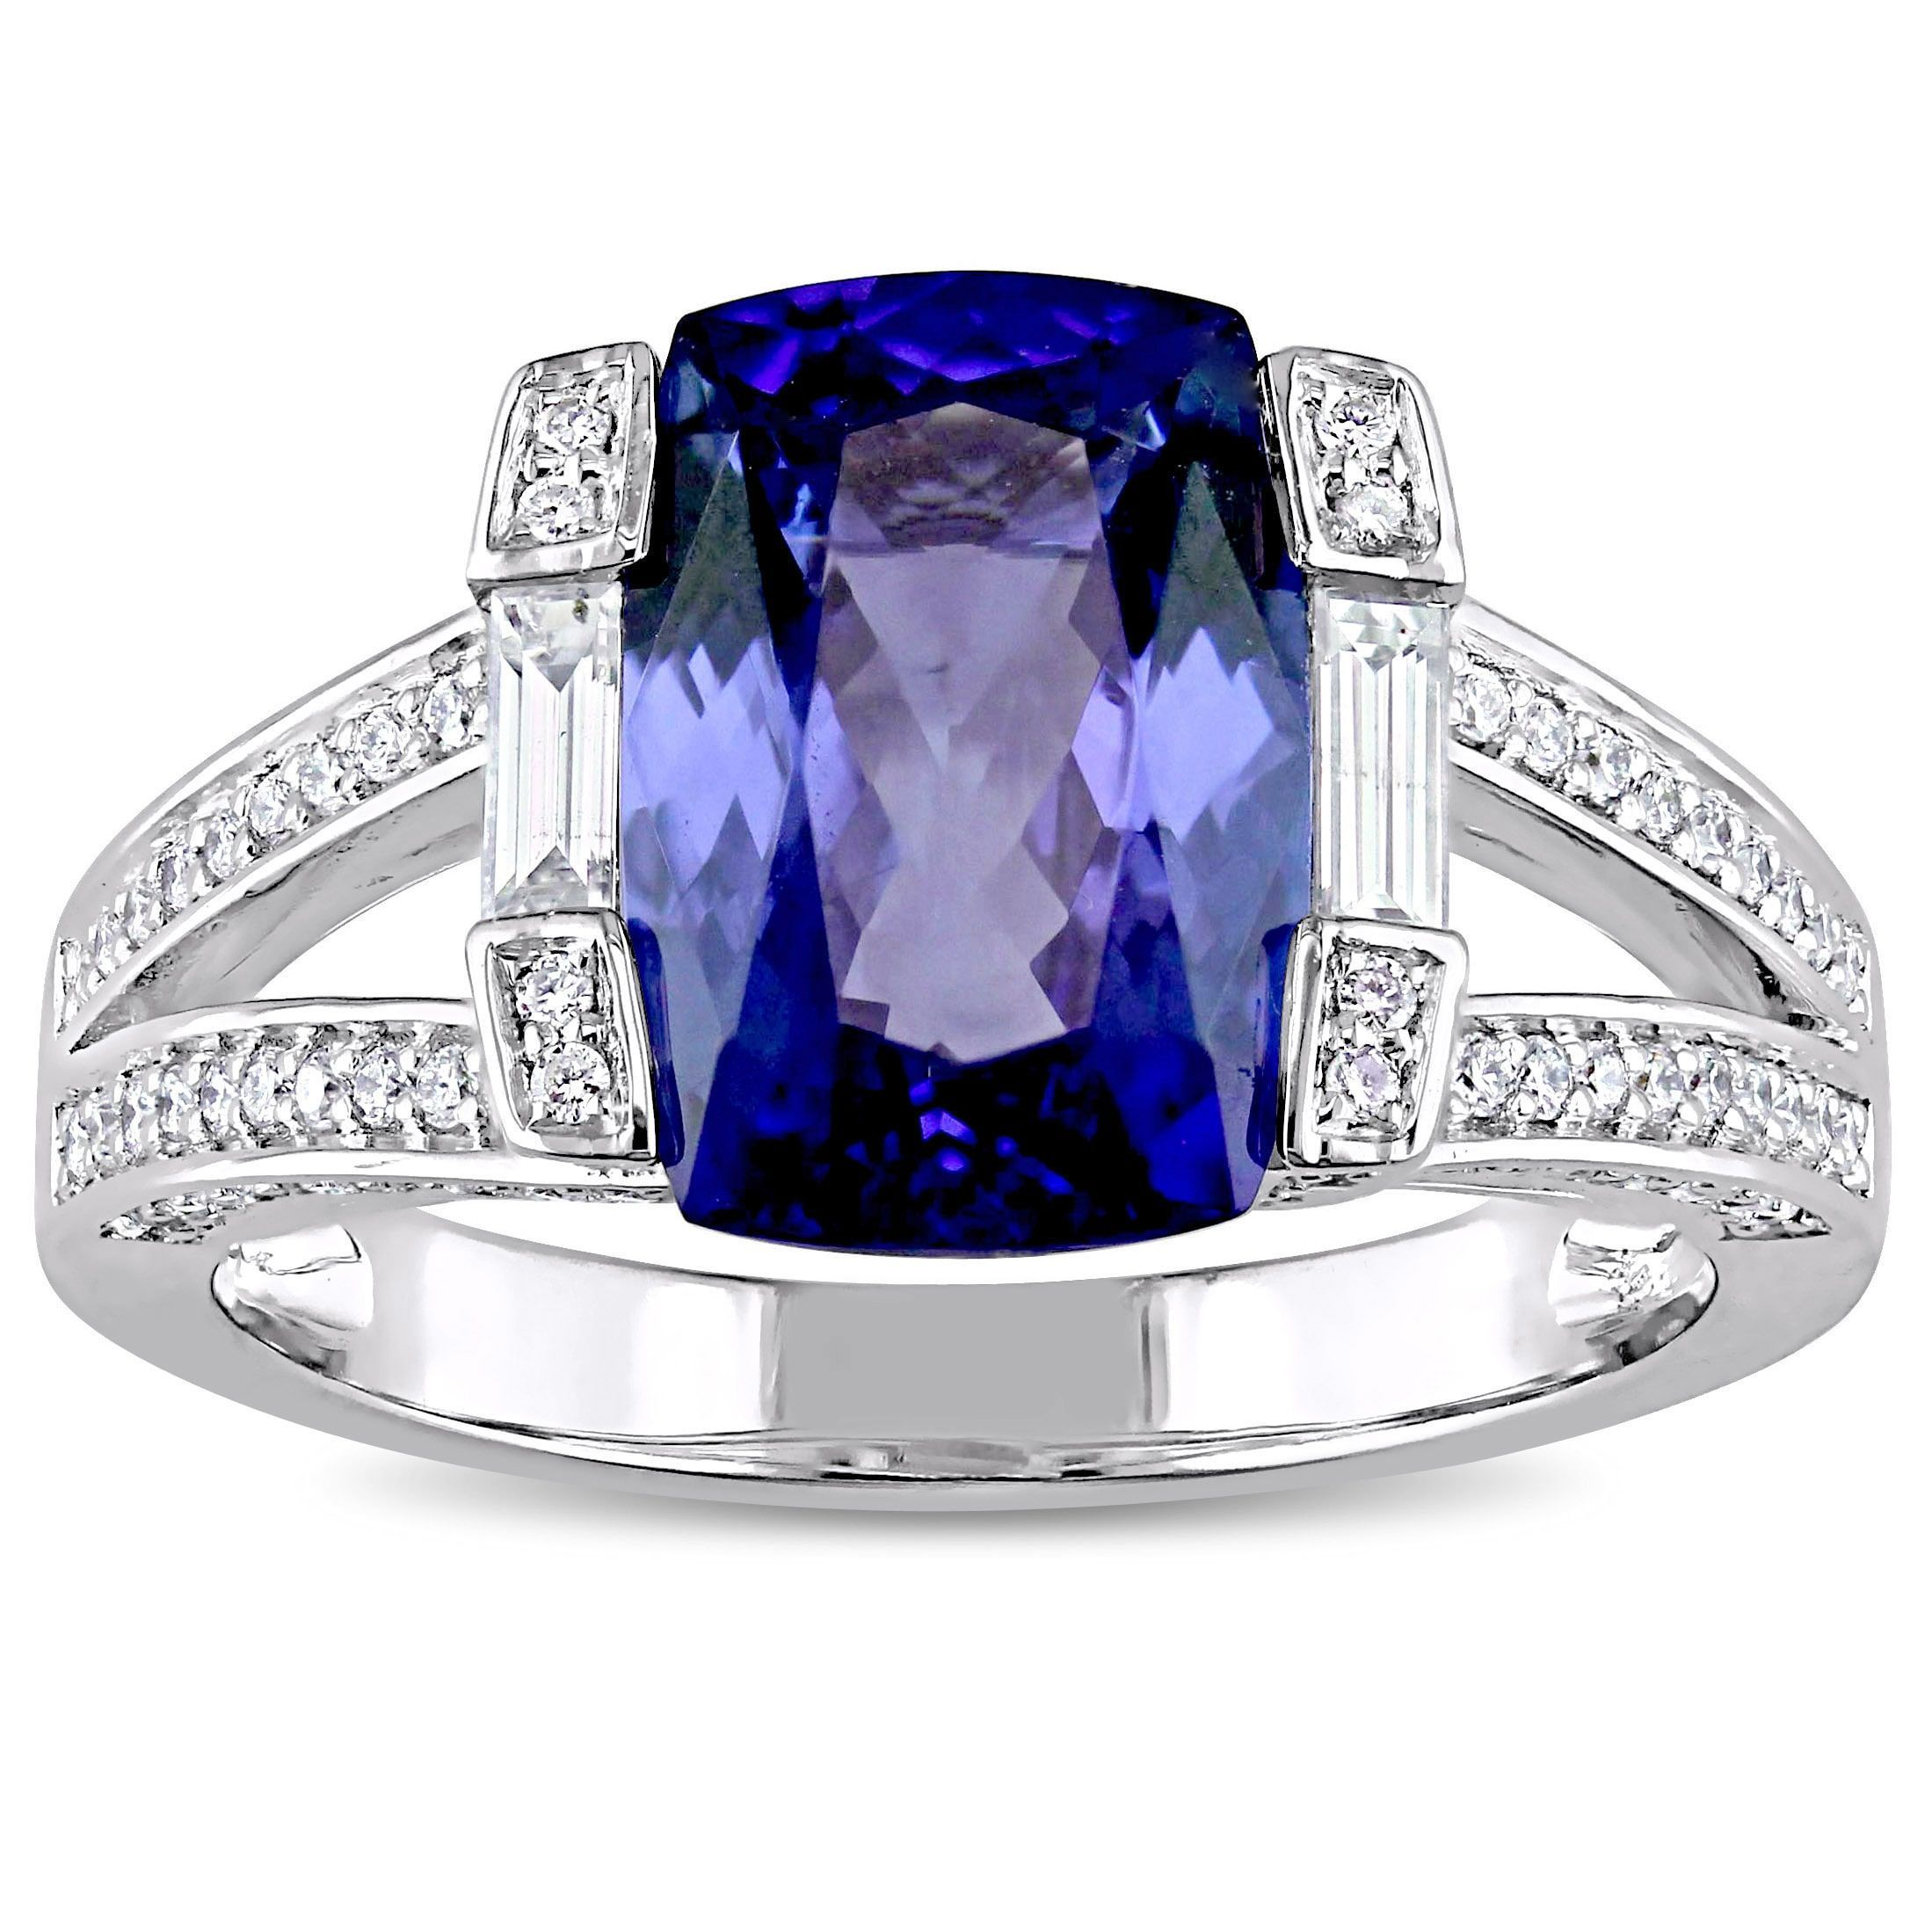 pin ring collection the christoff princess diamond cut and jewelry monarch michael tanzanite